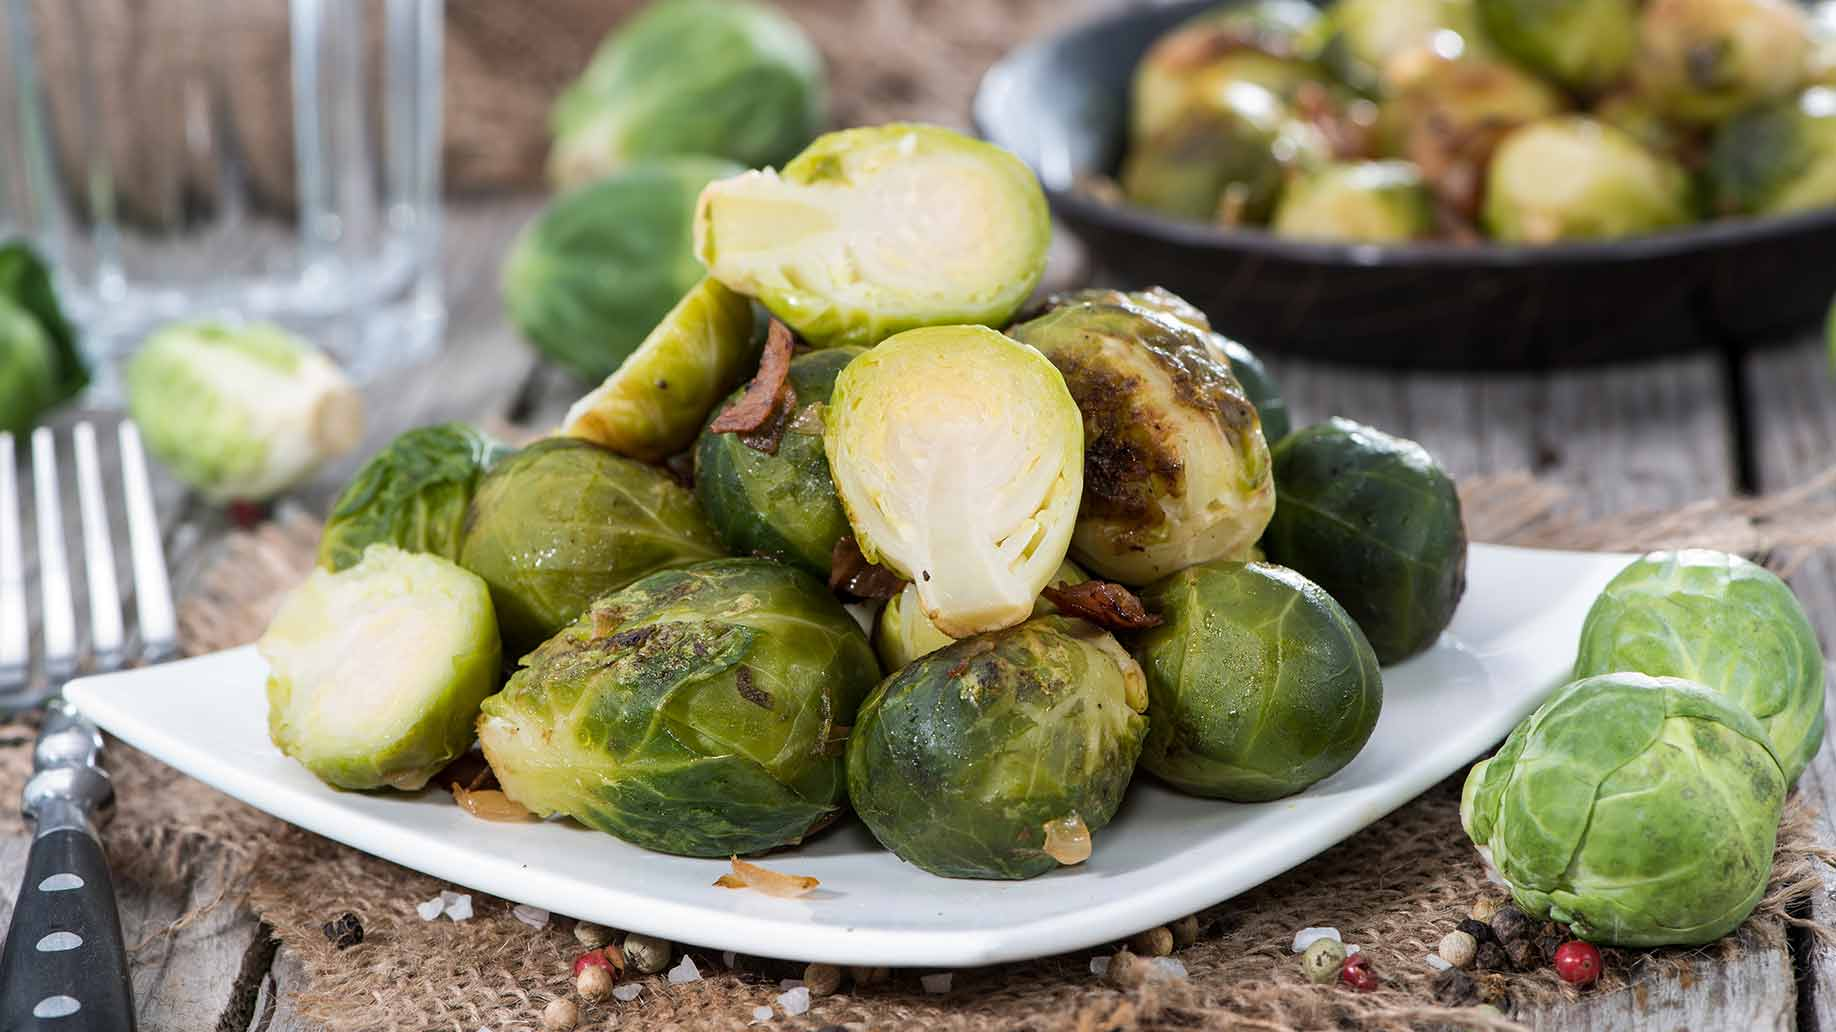 roasted brussels sprouts salt pepper ham healthy snack ideas